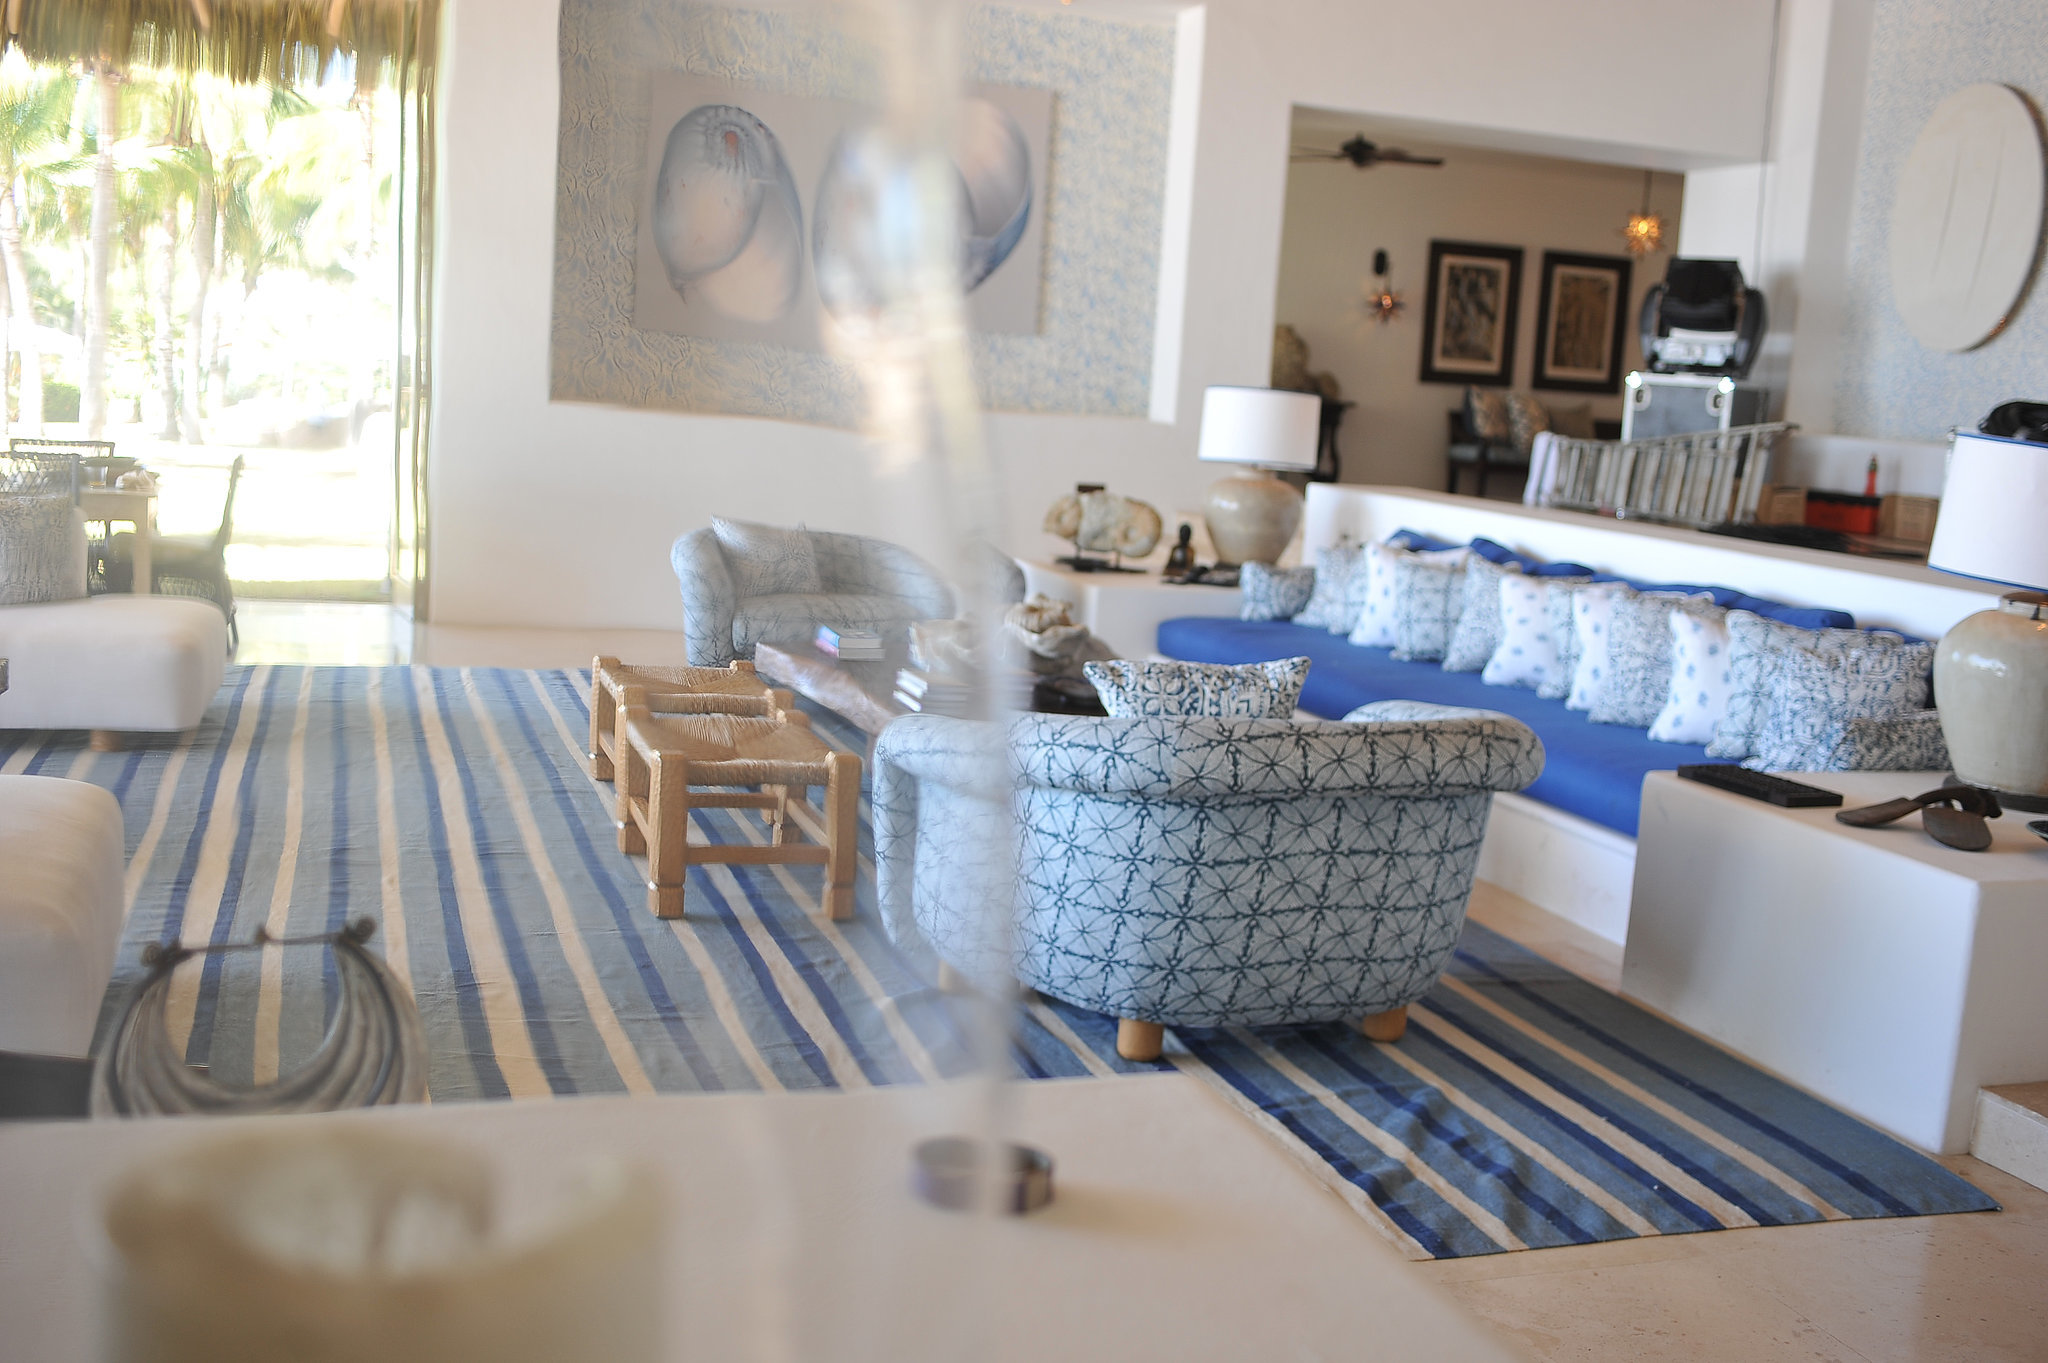 Blue and aqua decor keep with the home's Summer vibe.